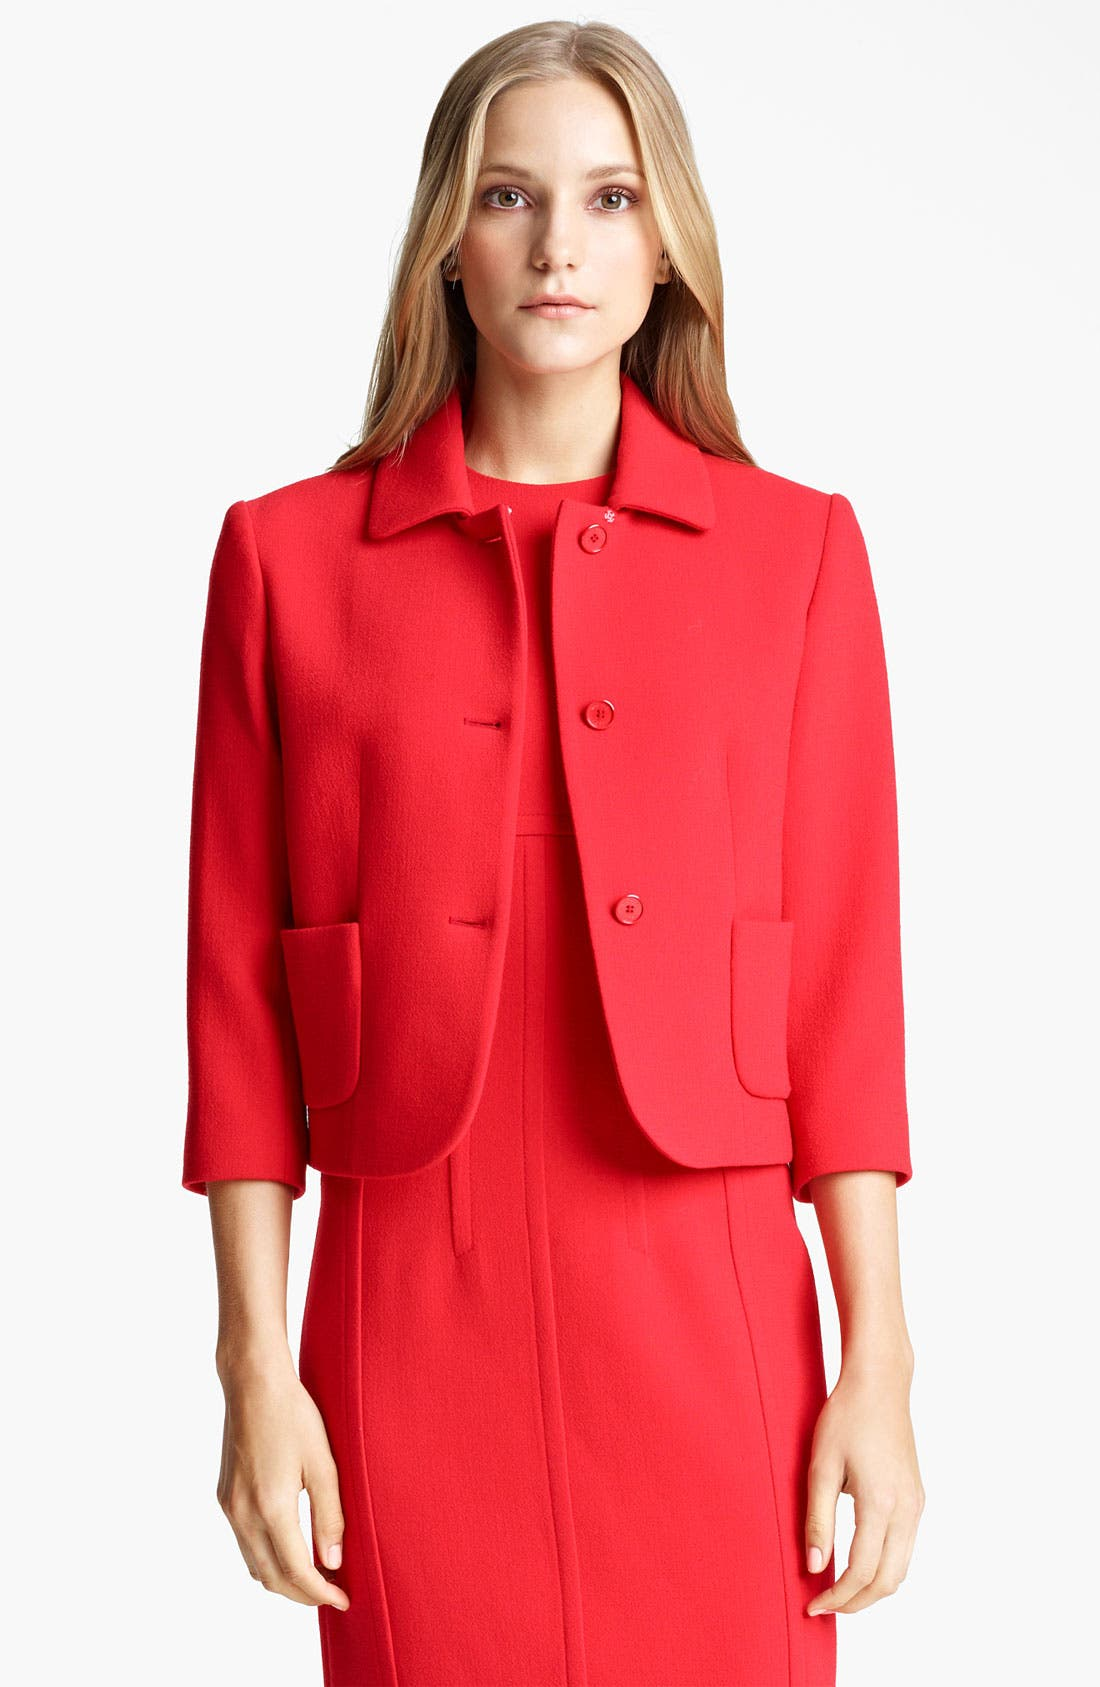 Alternate Image 1 Selected - Michael Kors Bouclé Jacket